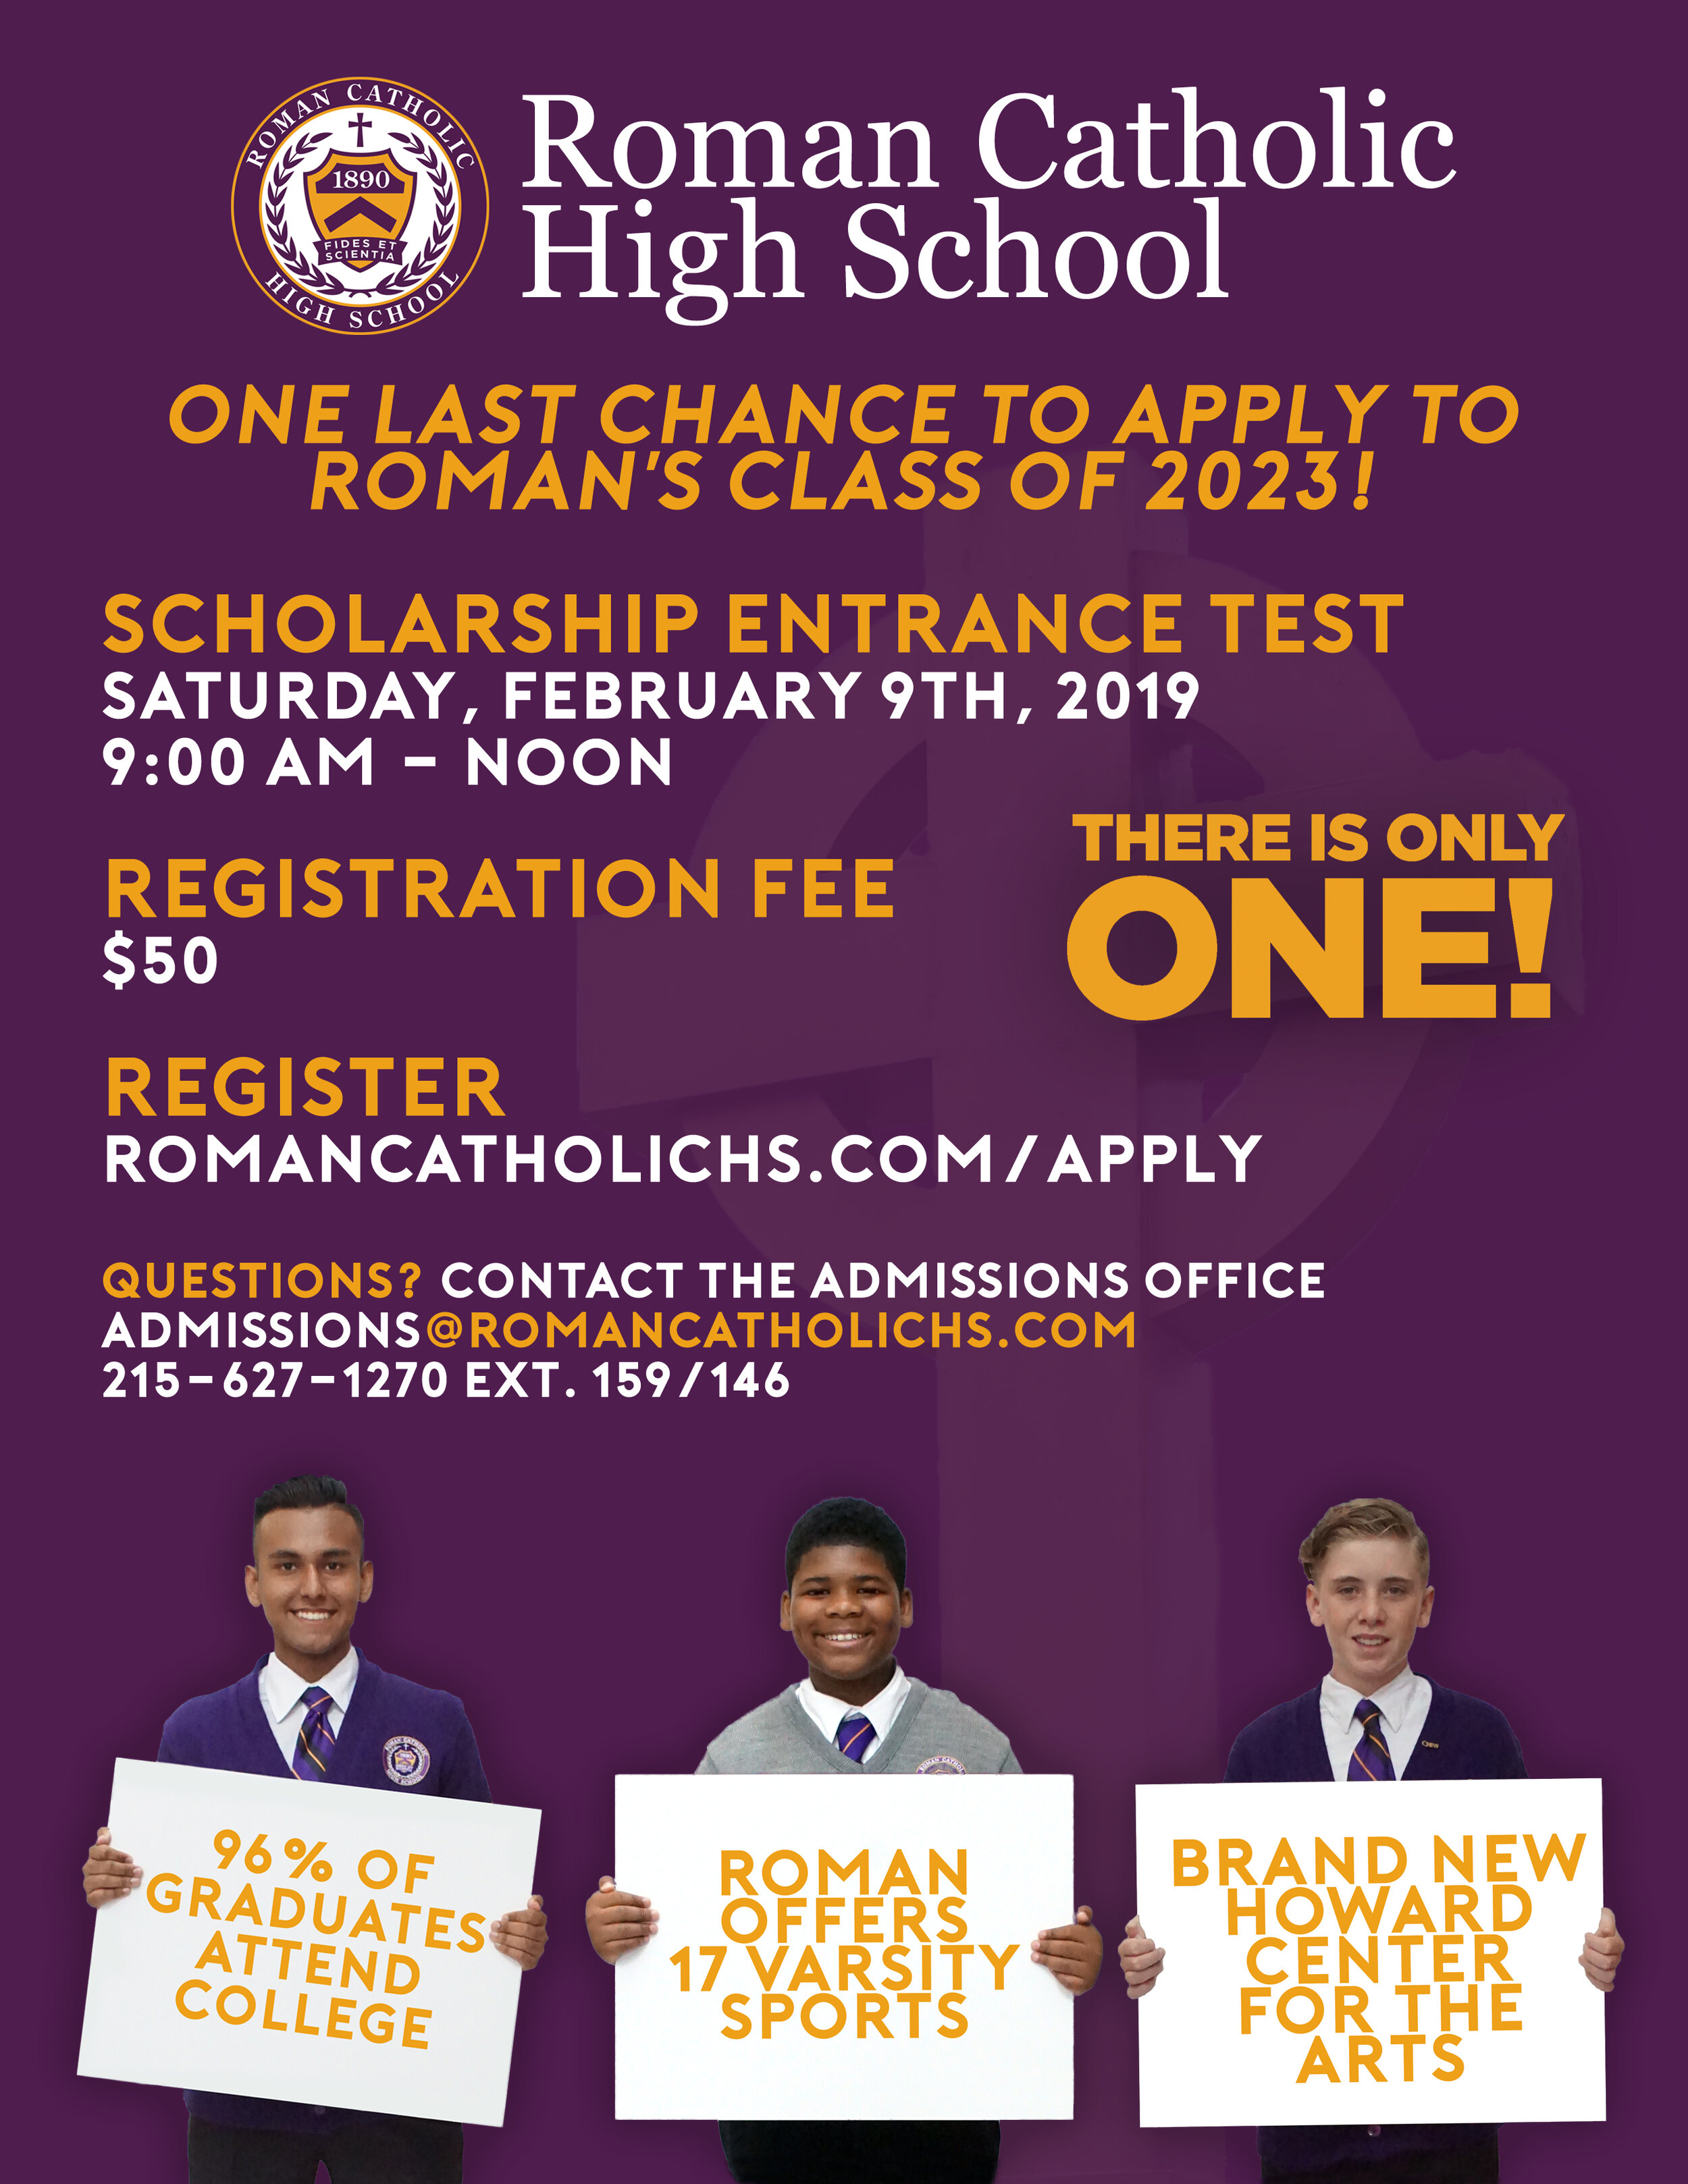 This advertisement was created as a final push for the last Scholarship Entrance Test for those applying for Roman's Class of 2023.